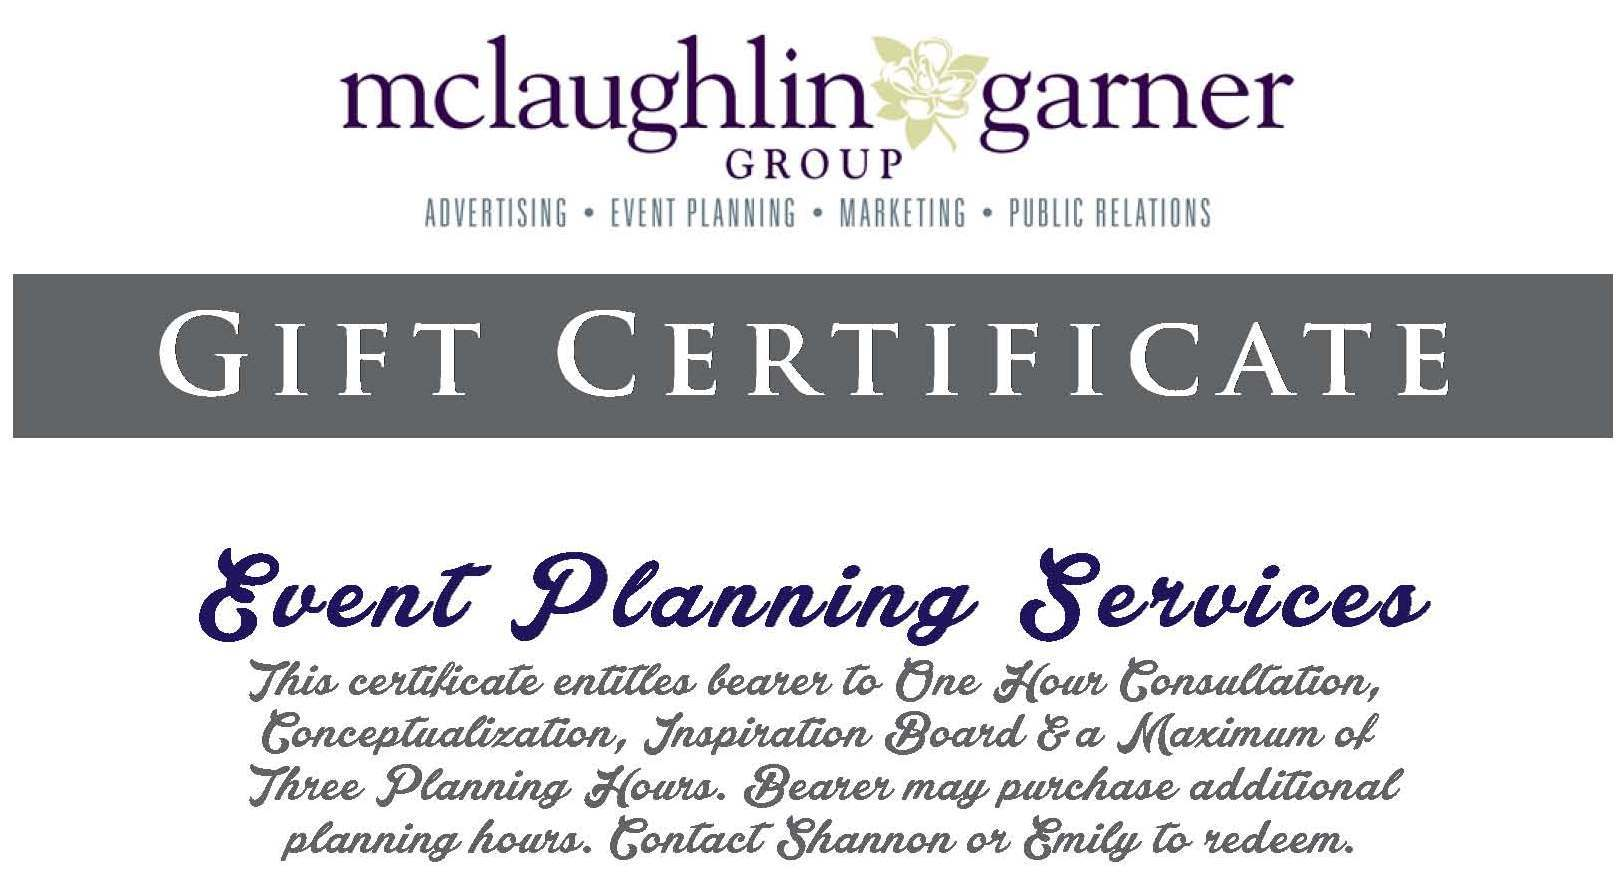 Mclaughlin garner group llc gift certificate for event planning 1betcityfo Choice Image